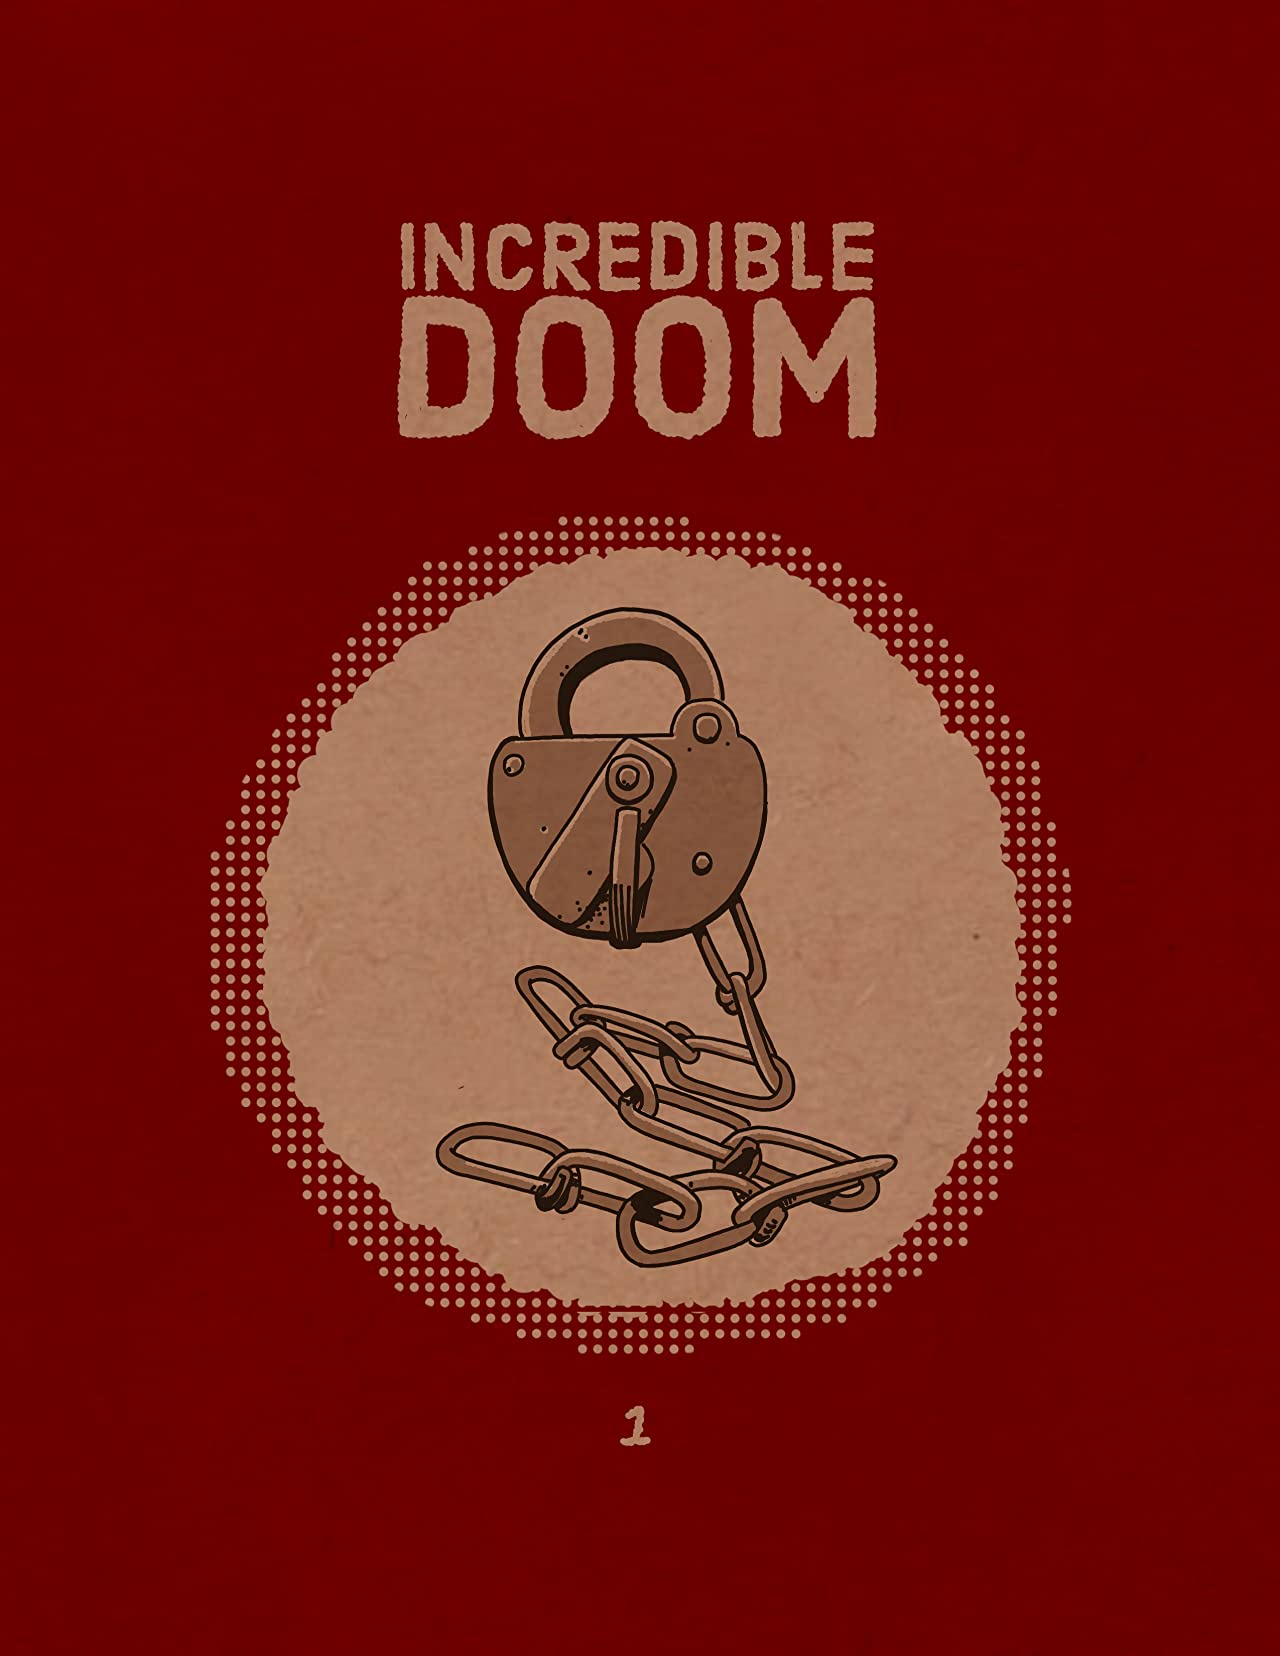 Incredible Doom #1